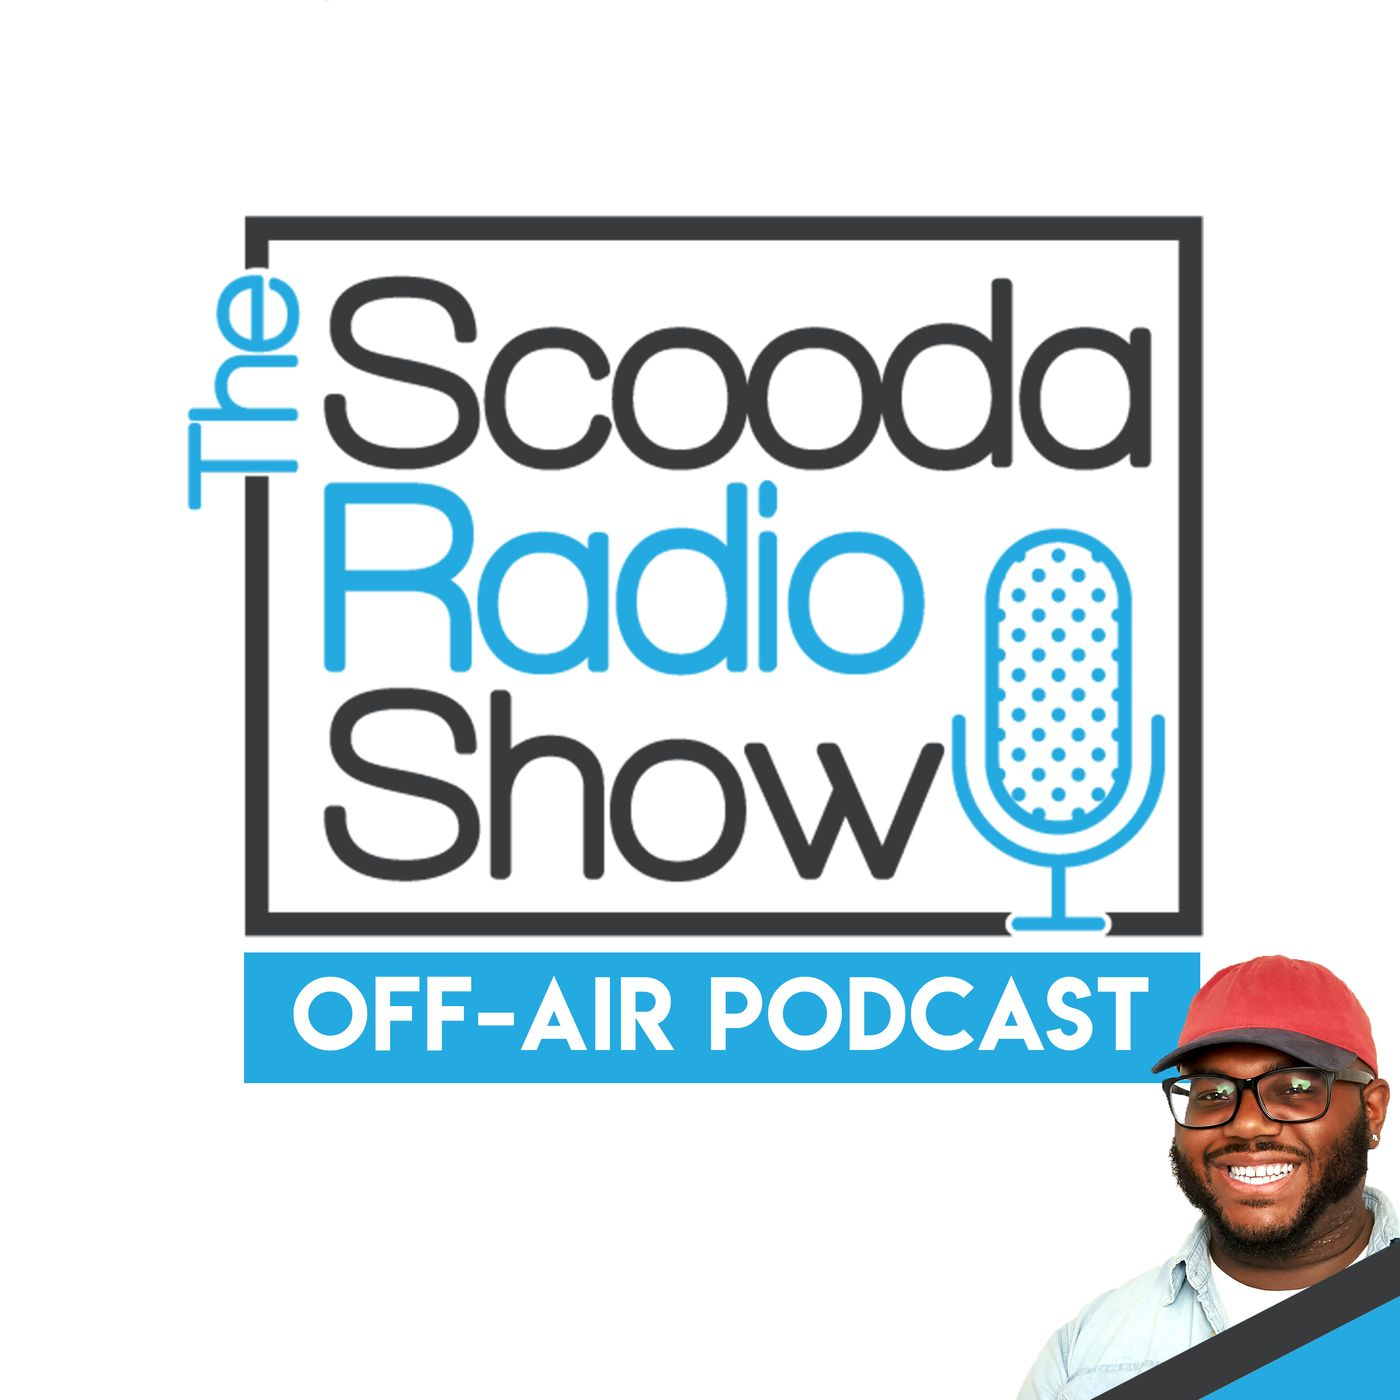 Scooda Radio Show: Off Air ft. Titus Showers